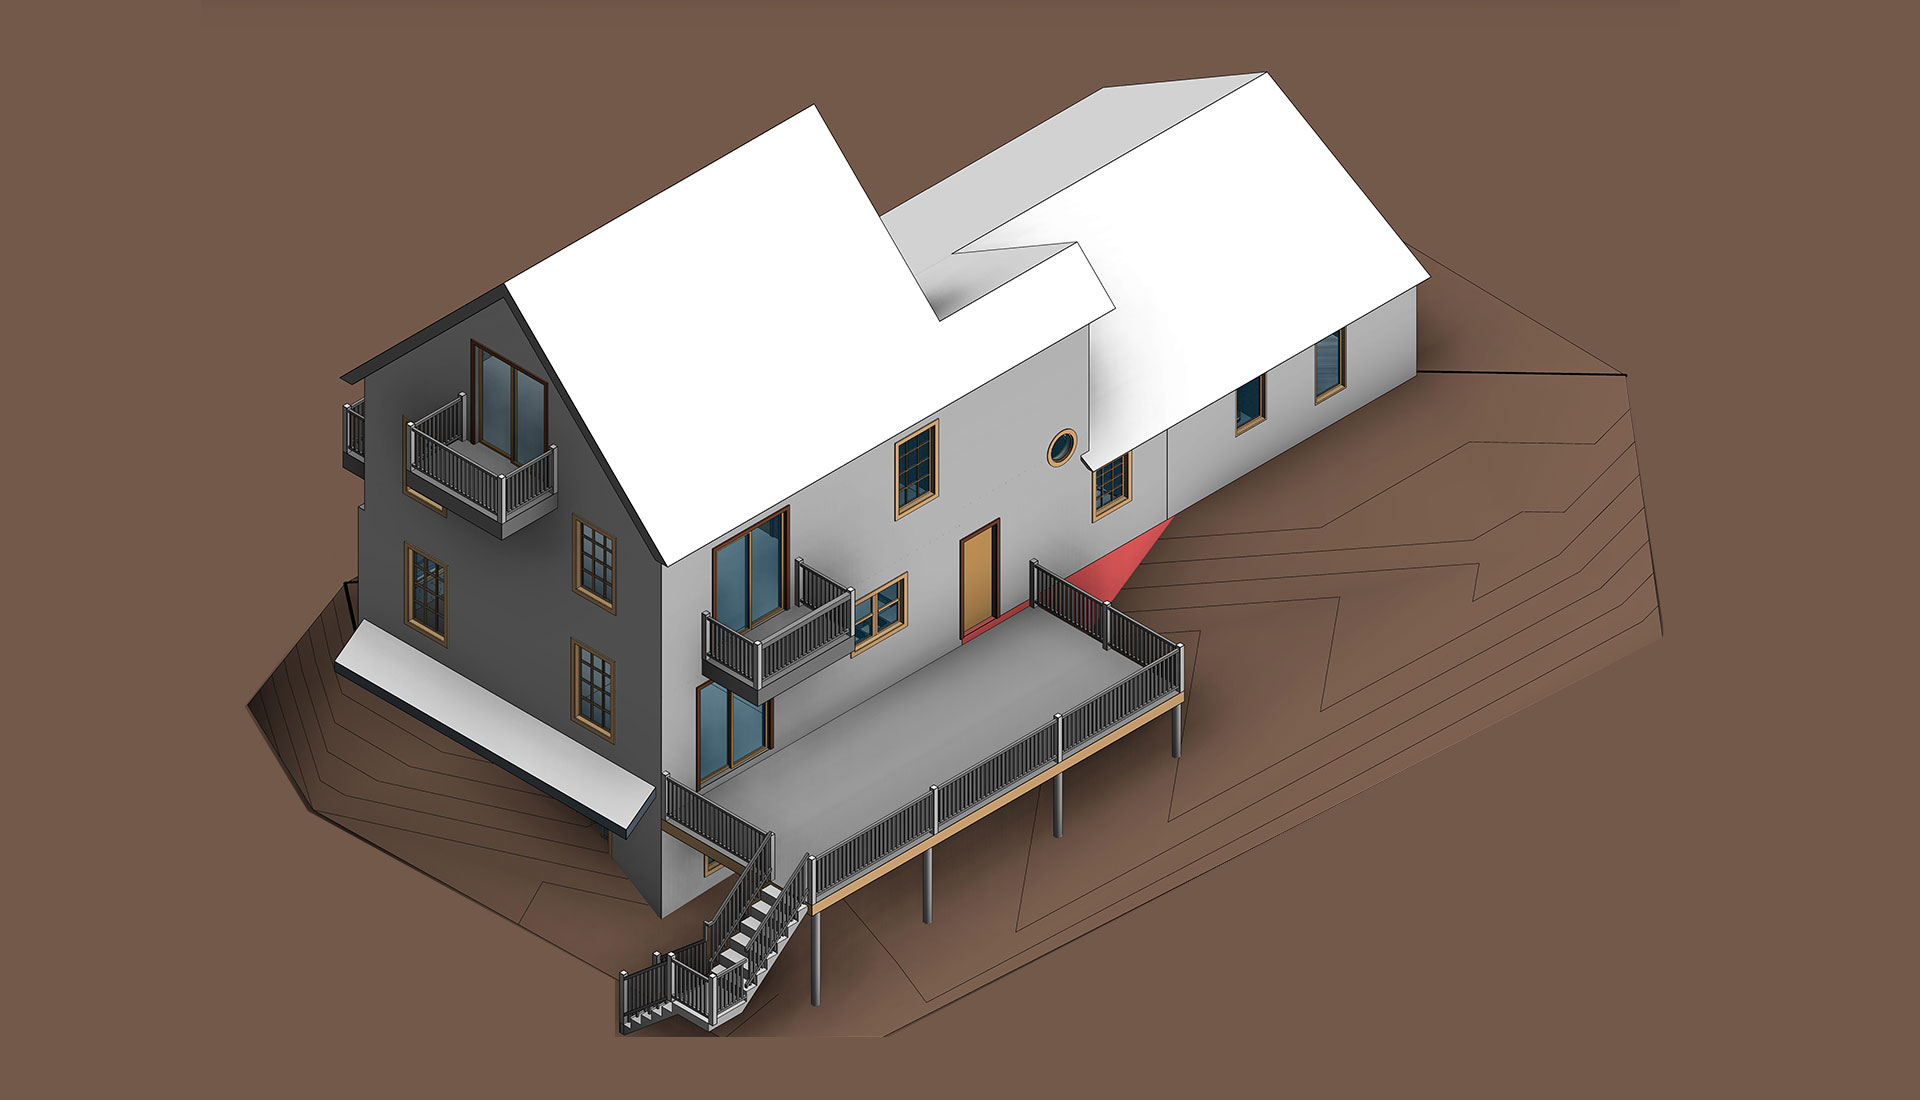 Revit-Model-of-Home_Residential-Project-by-United-BIM